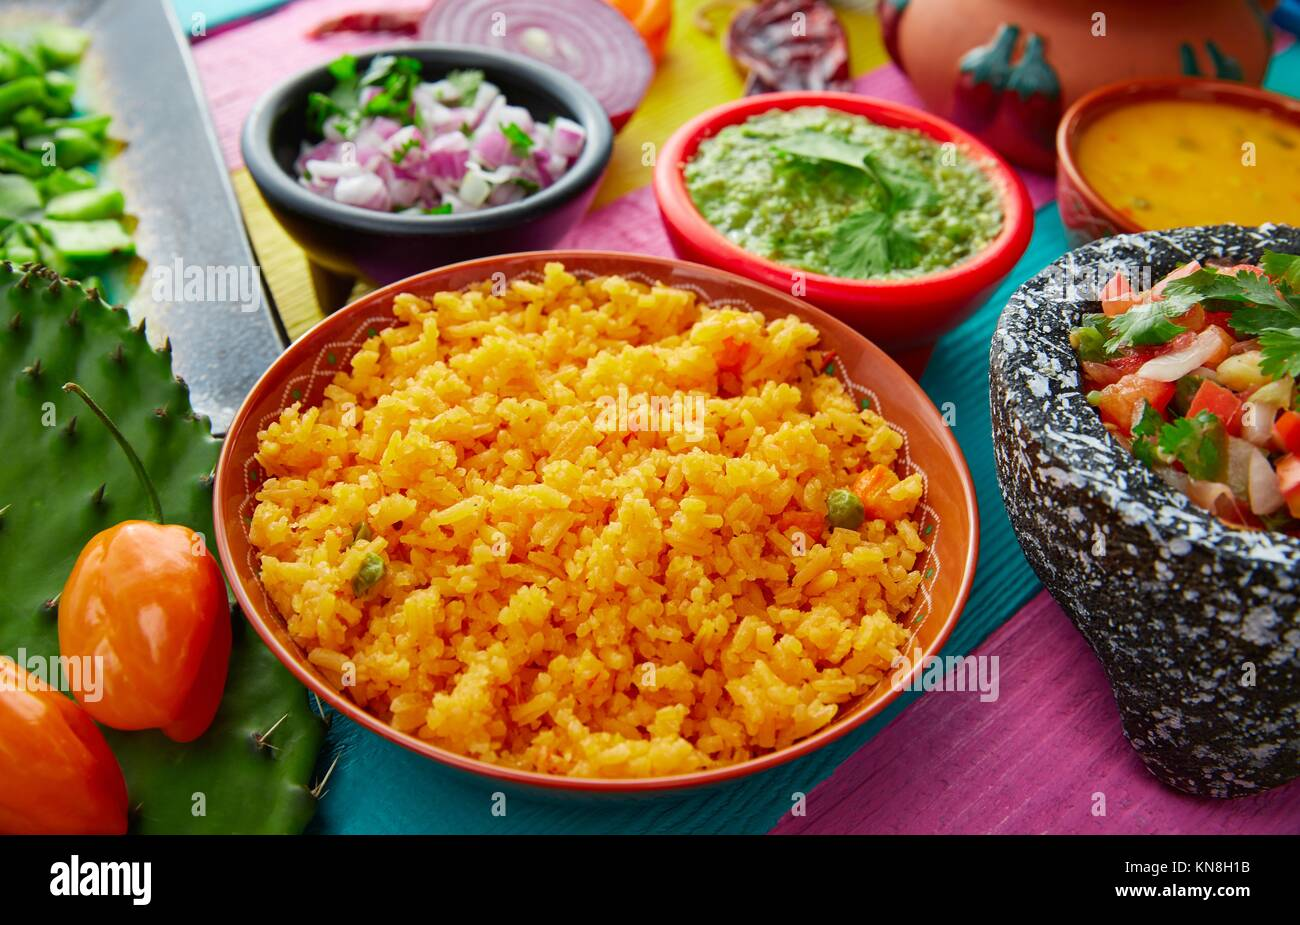 Mexican yellow rice with chilis and sauces in colorful background. Stock Photo